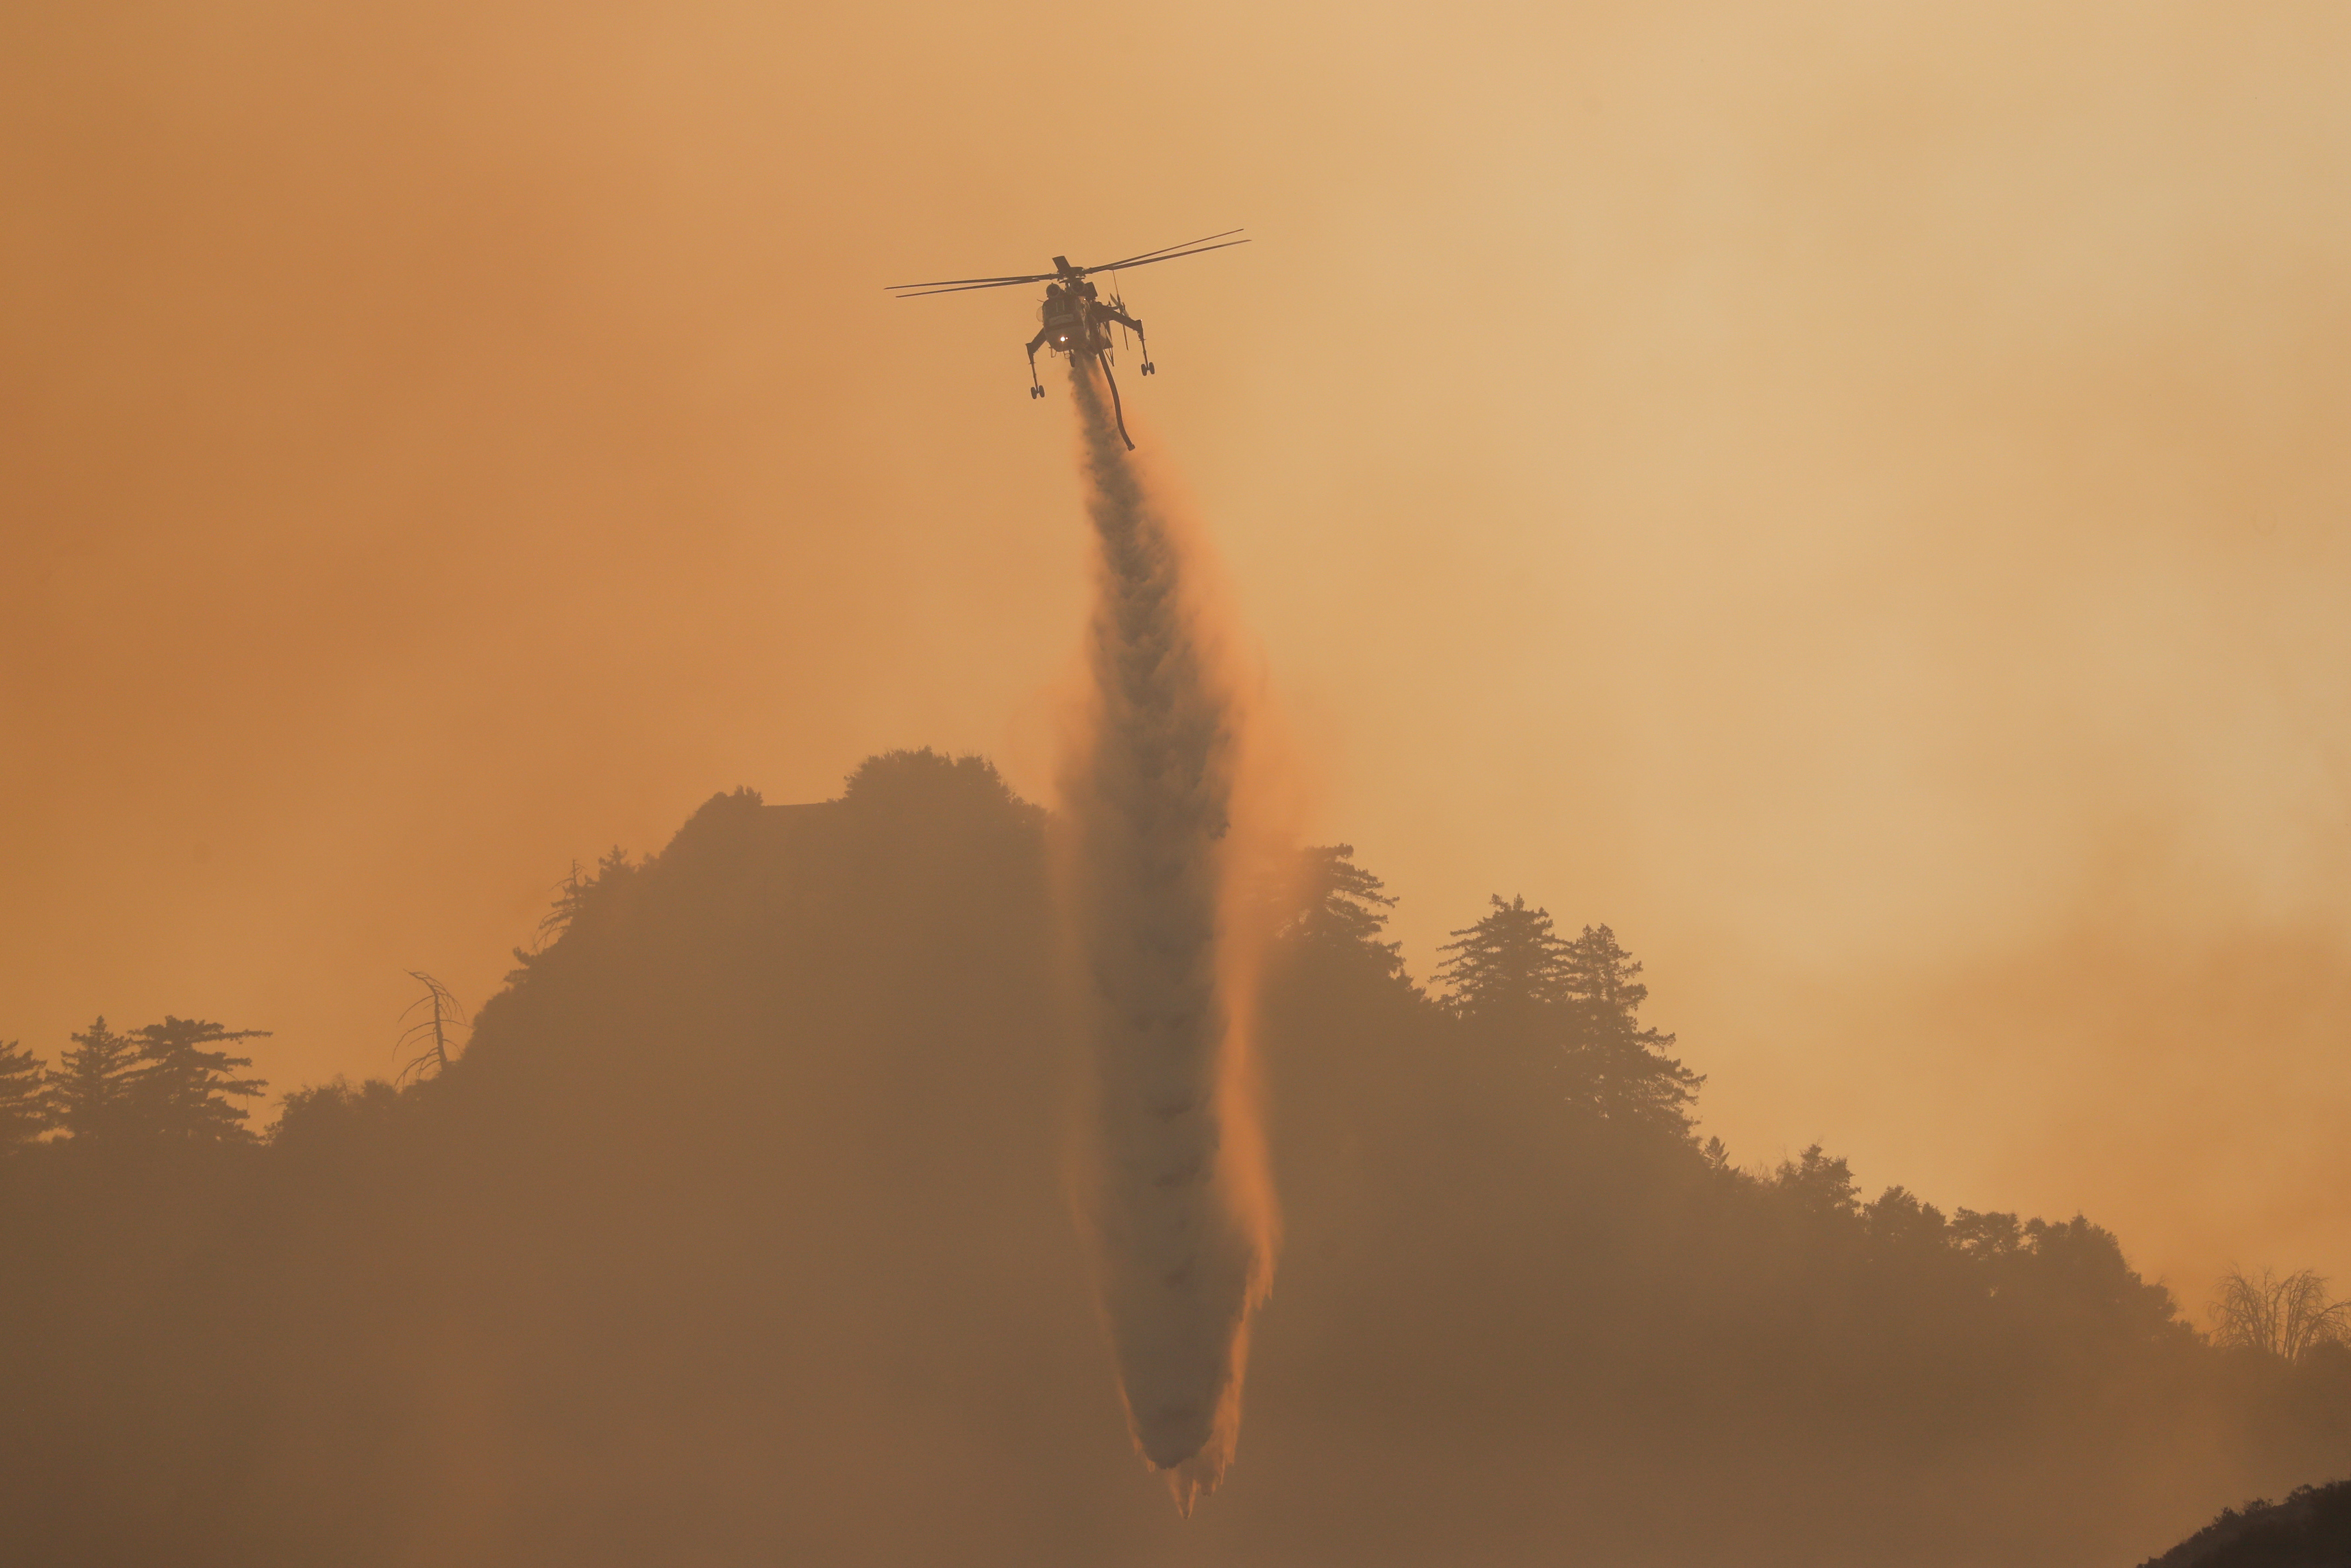 A helicopter makes a water drop over the Bobcat Fire burning near Mount Wilson in the Angeles National Forest, near Los Angeles, U.S., September 23, 2020. REUTERS/Mario Anzuoni - RC2Q4J91JM55